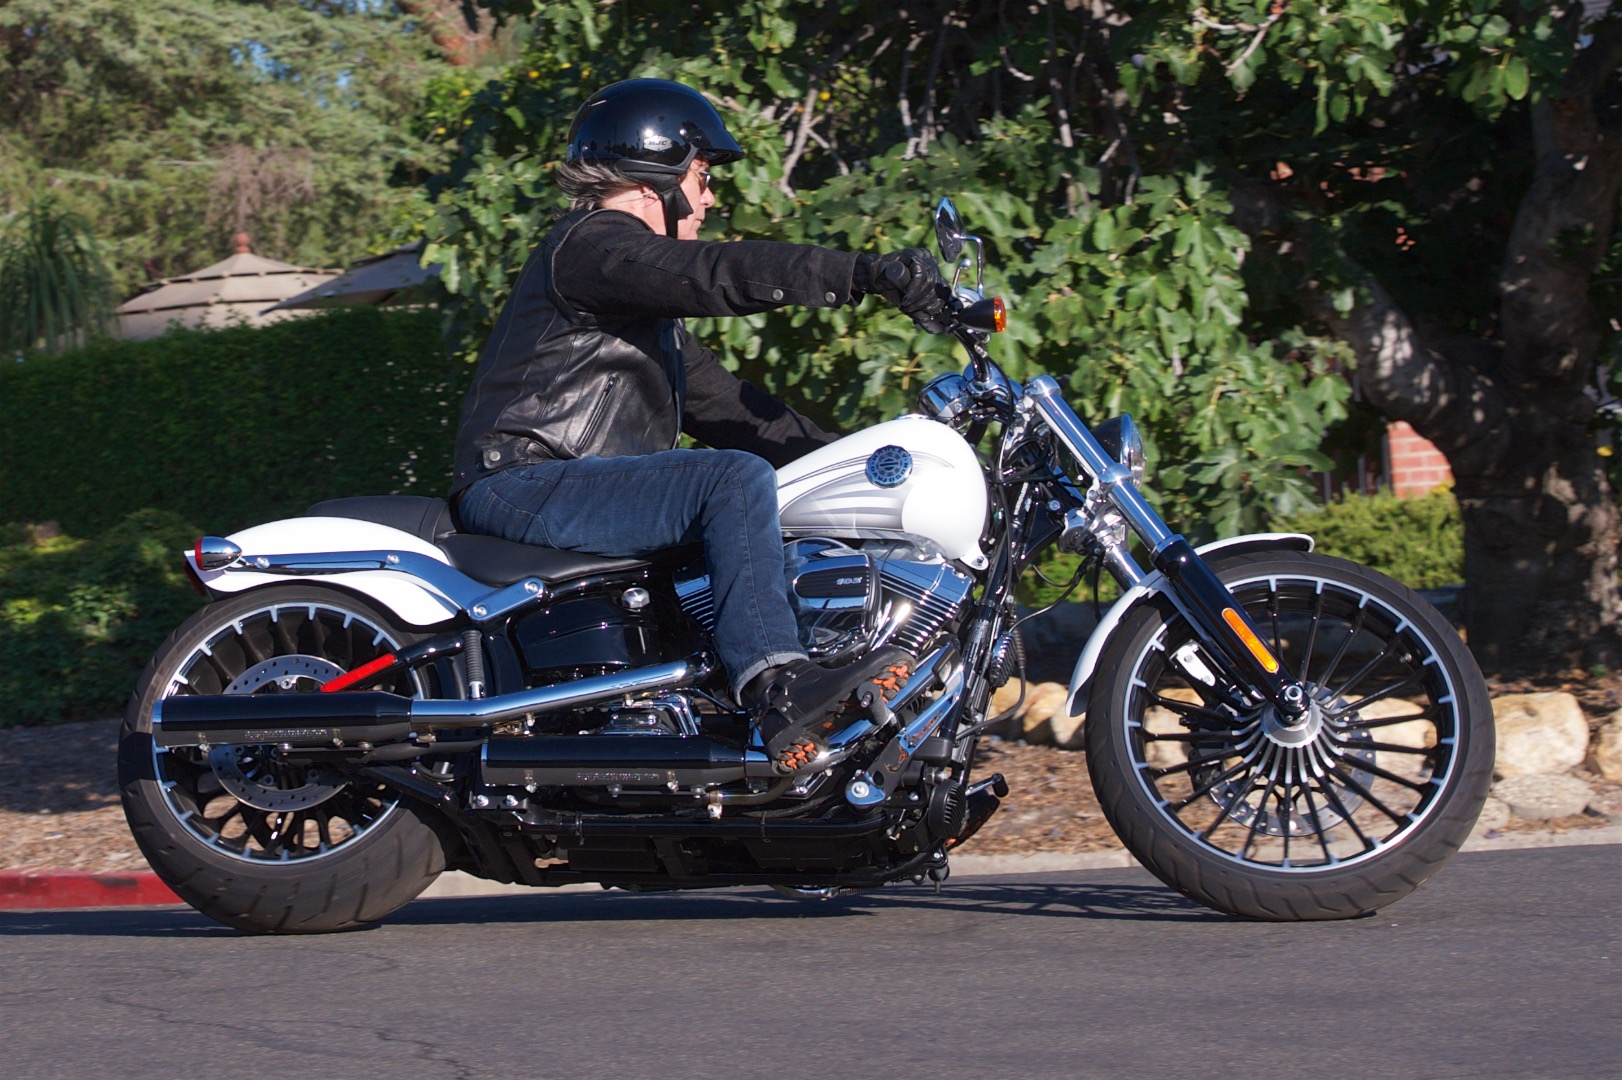 2017 Harley-Davidson Softail Breakout Review | Go Straight